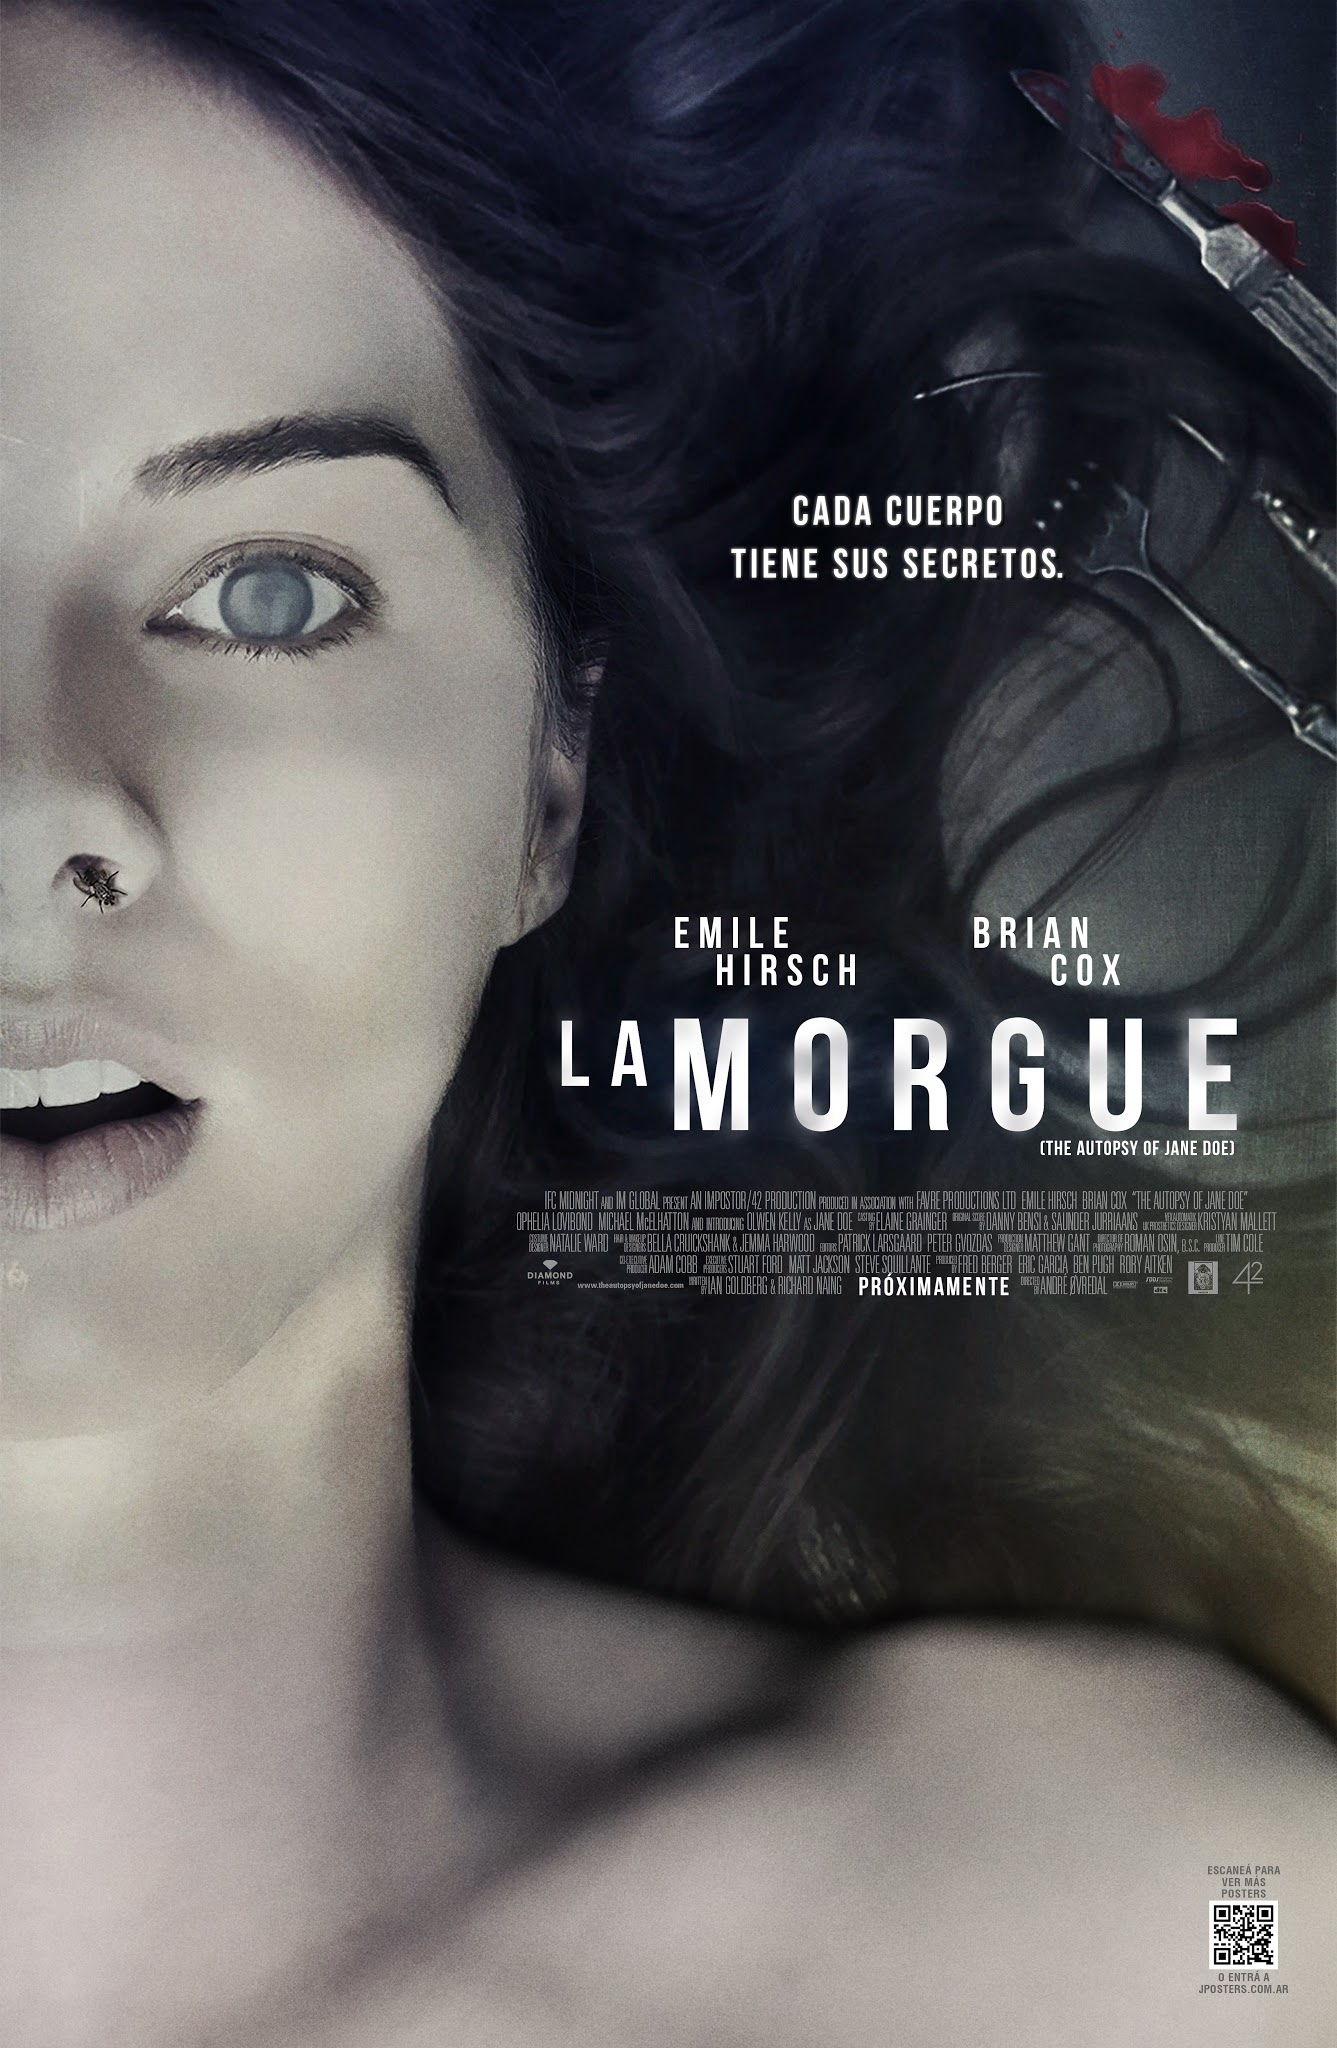 Reseñas: The Autopsy of Jane Doe - La Morgue por Kassfinol